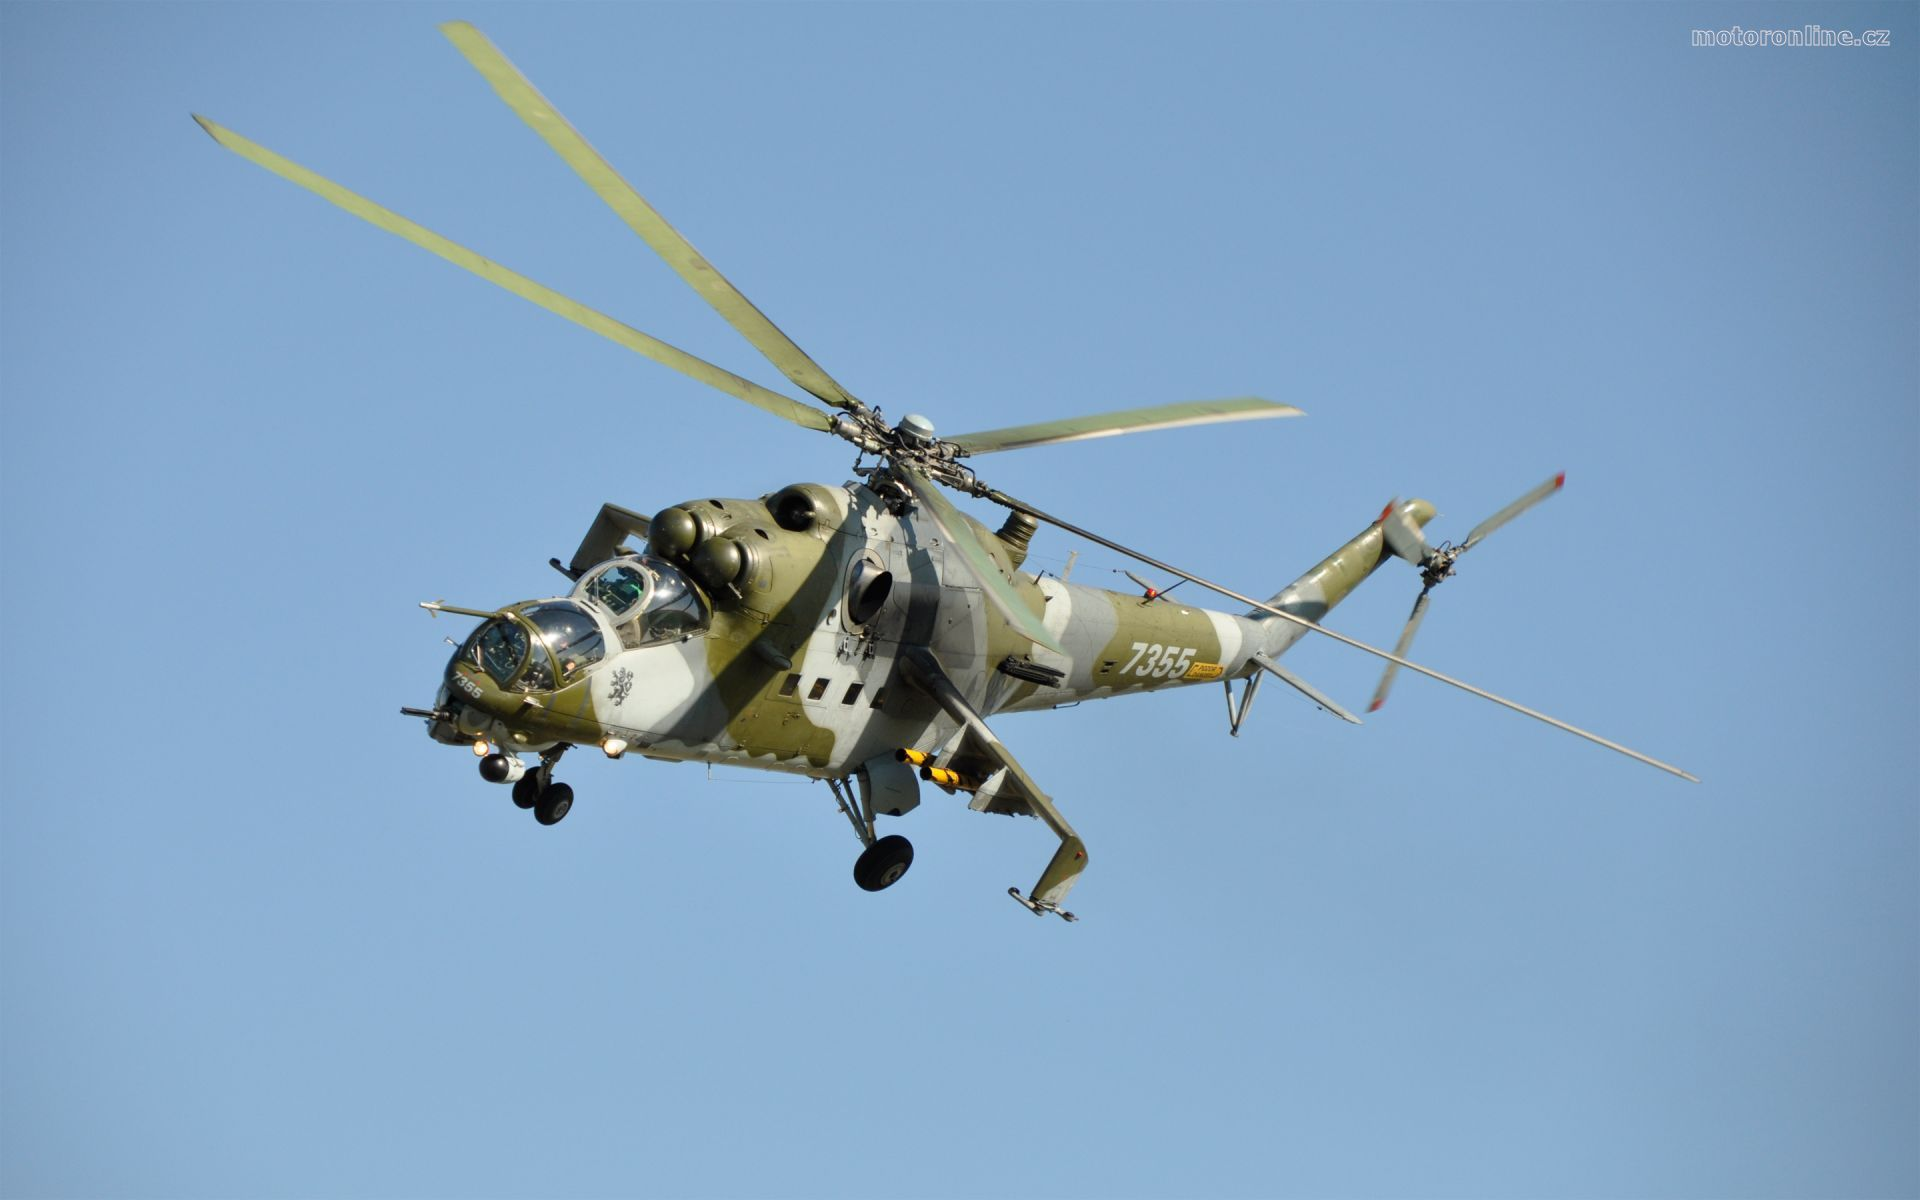 Helicopter MI 24 HIND widescreen